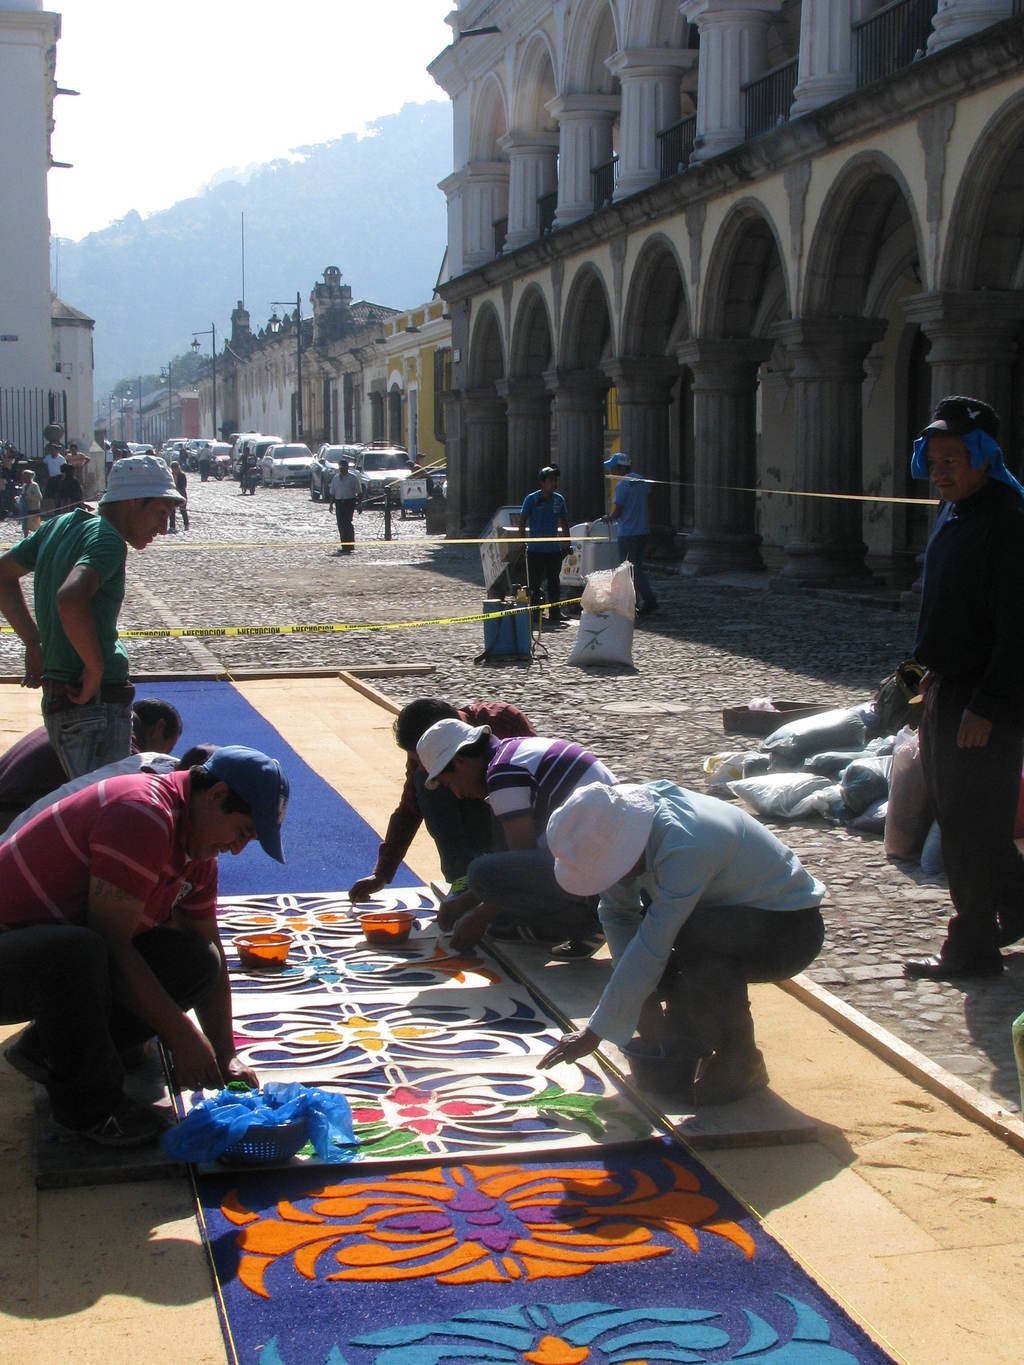 This March 22, 2015 photo shows people creating a colored sawdust carpet in the main square of Antigua, Guatemala on the morning of the...